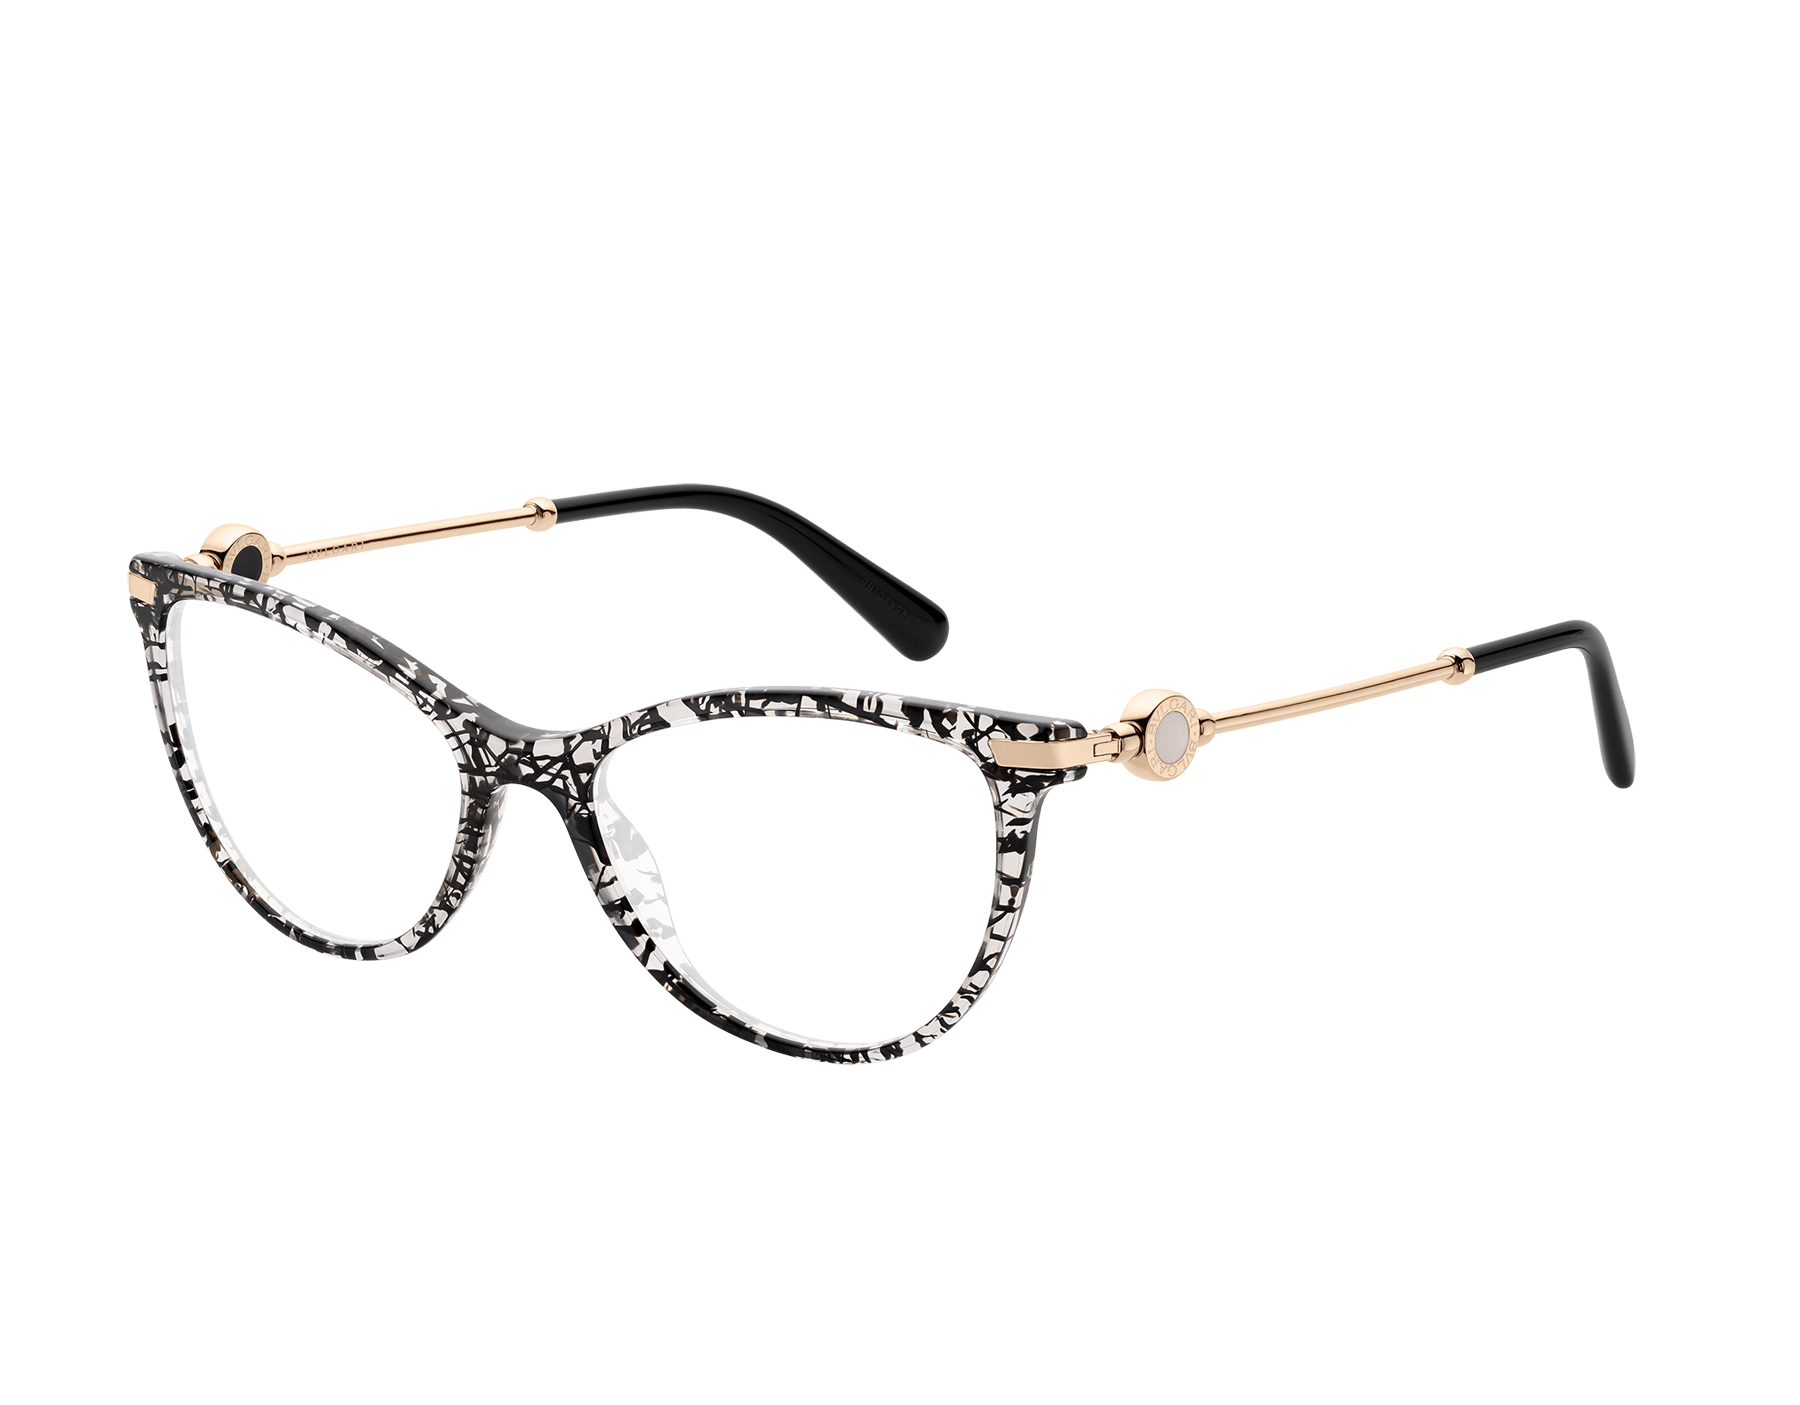 Bulgari Bulgari soft cat-eye acetate eyeglasses. 903631 image 1